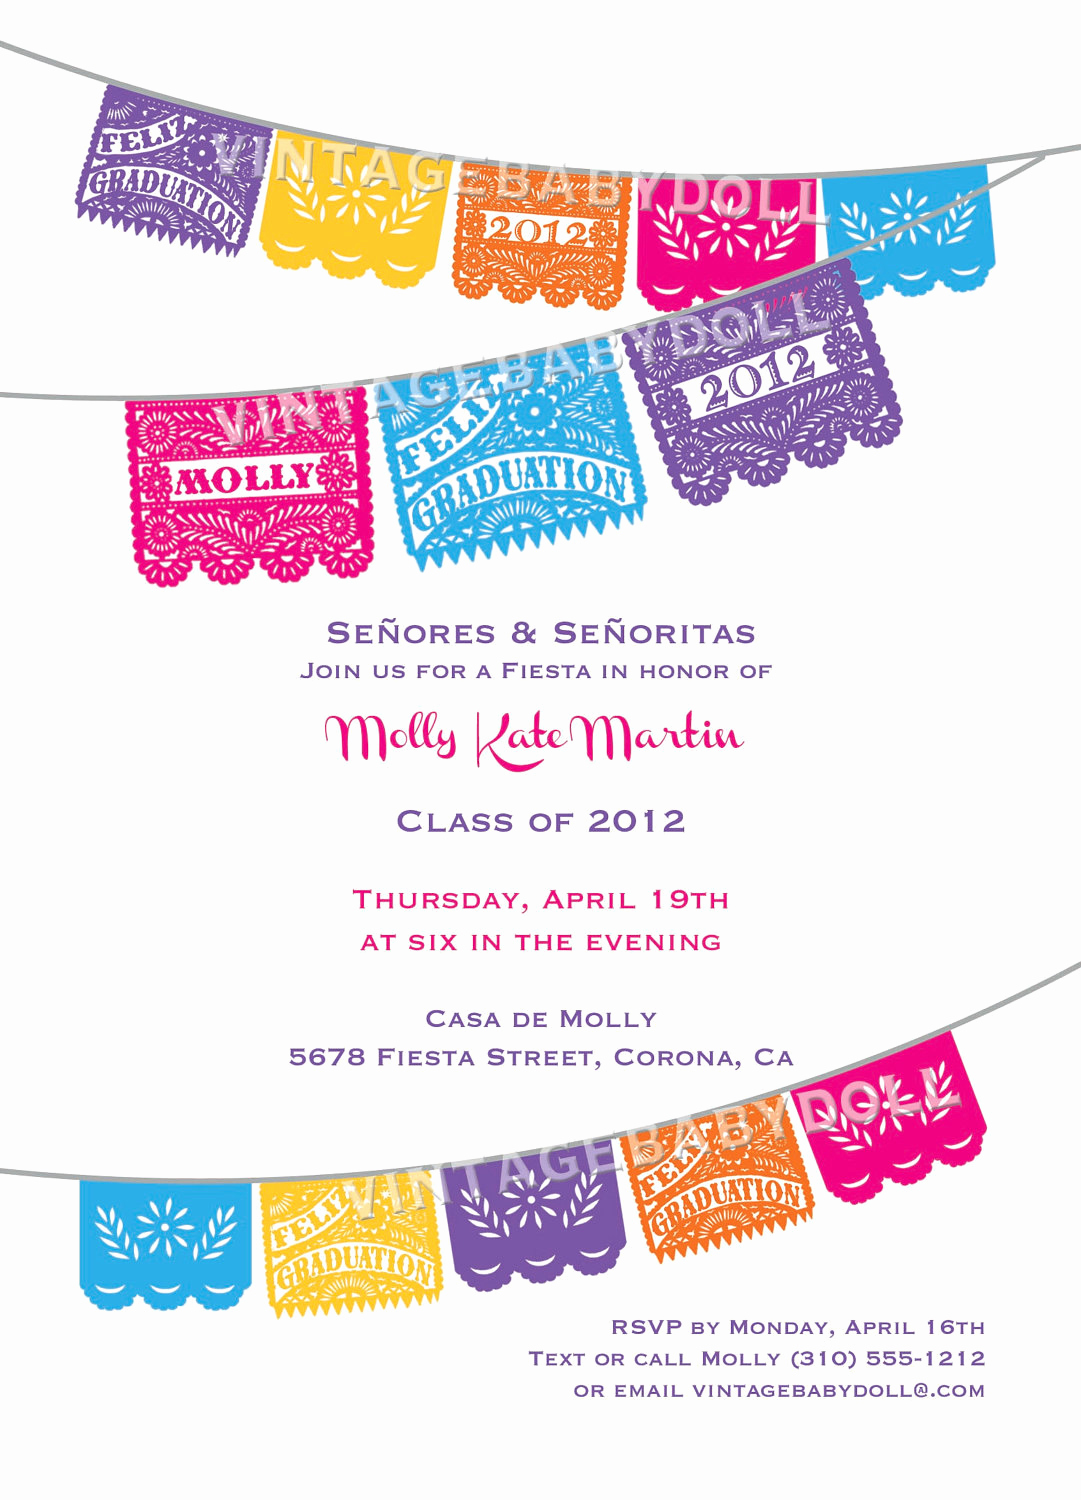 Papel Picado Invitation Template New Papel Picado Graduation Festive Papel Picado Fiesta Invitation